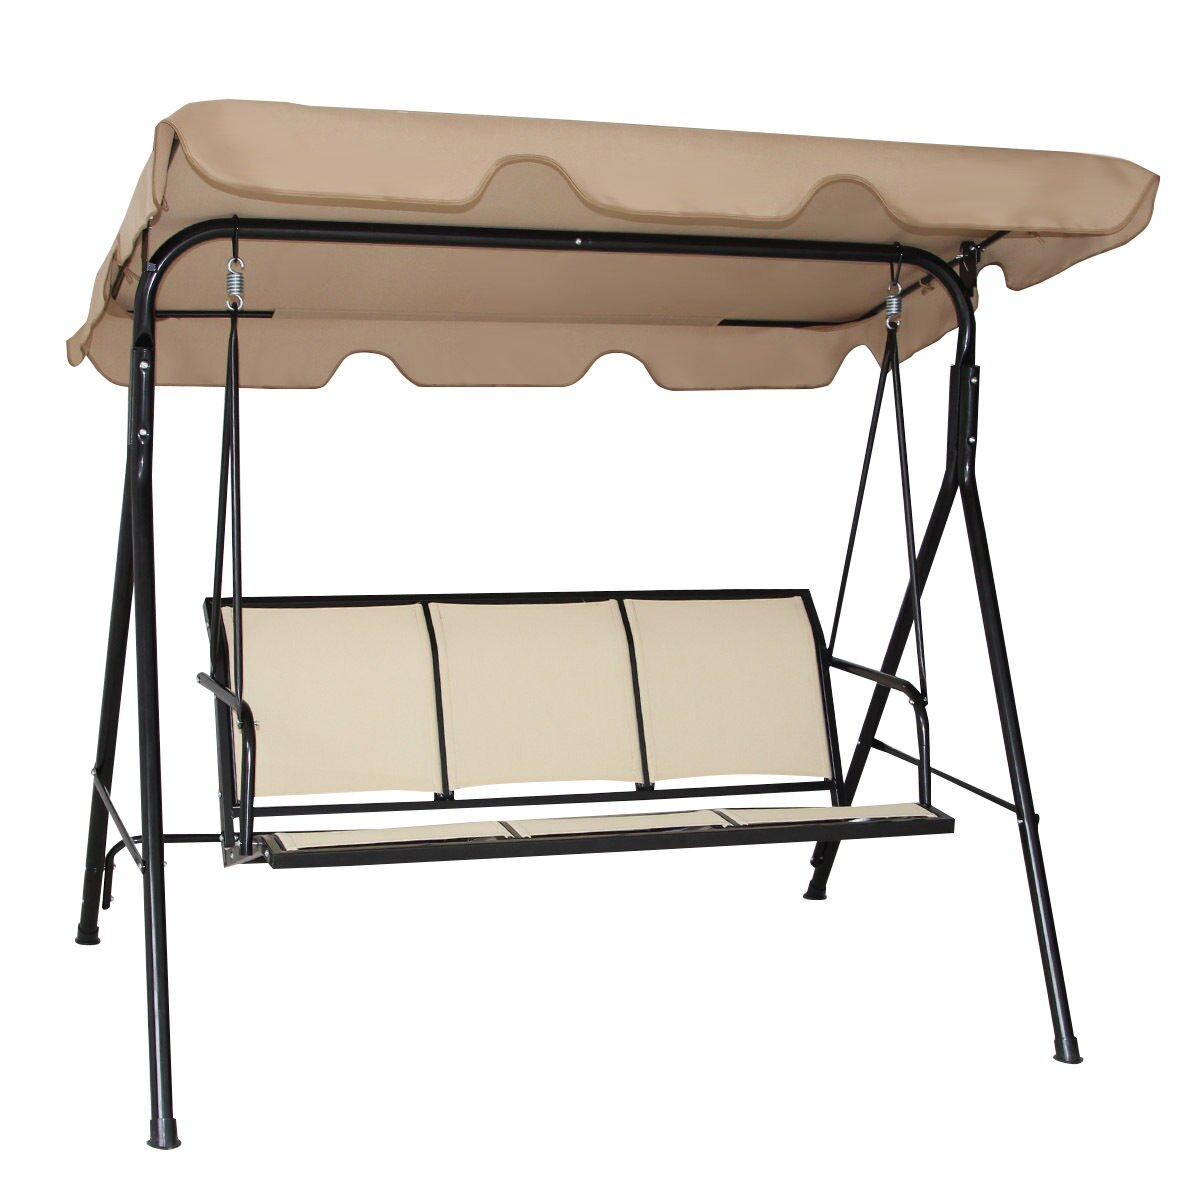 Costway Outdoor Patio Swing Canopy 3 Person Canopy Swing Chair Patio  Hammock Brown 2